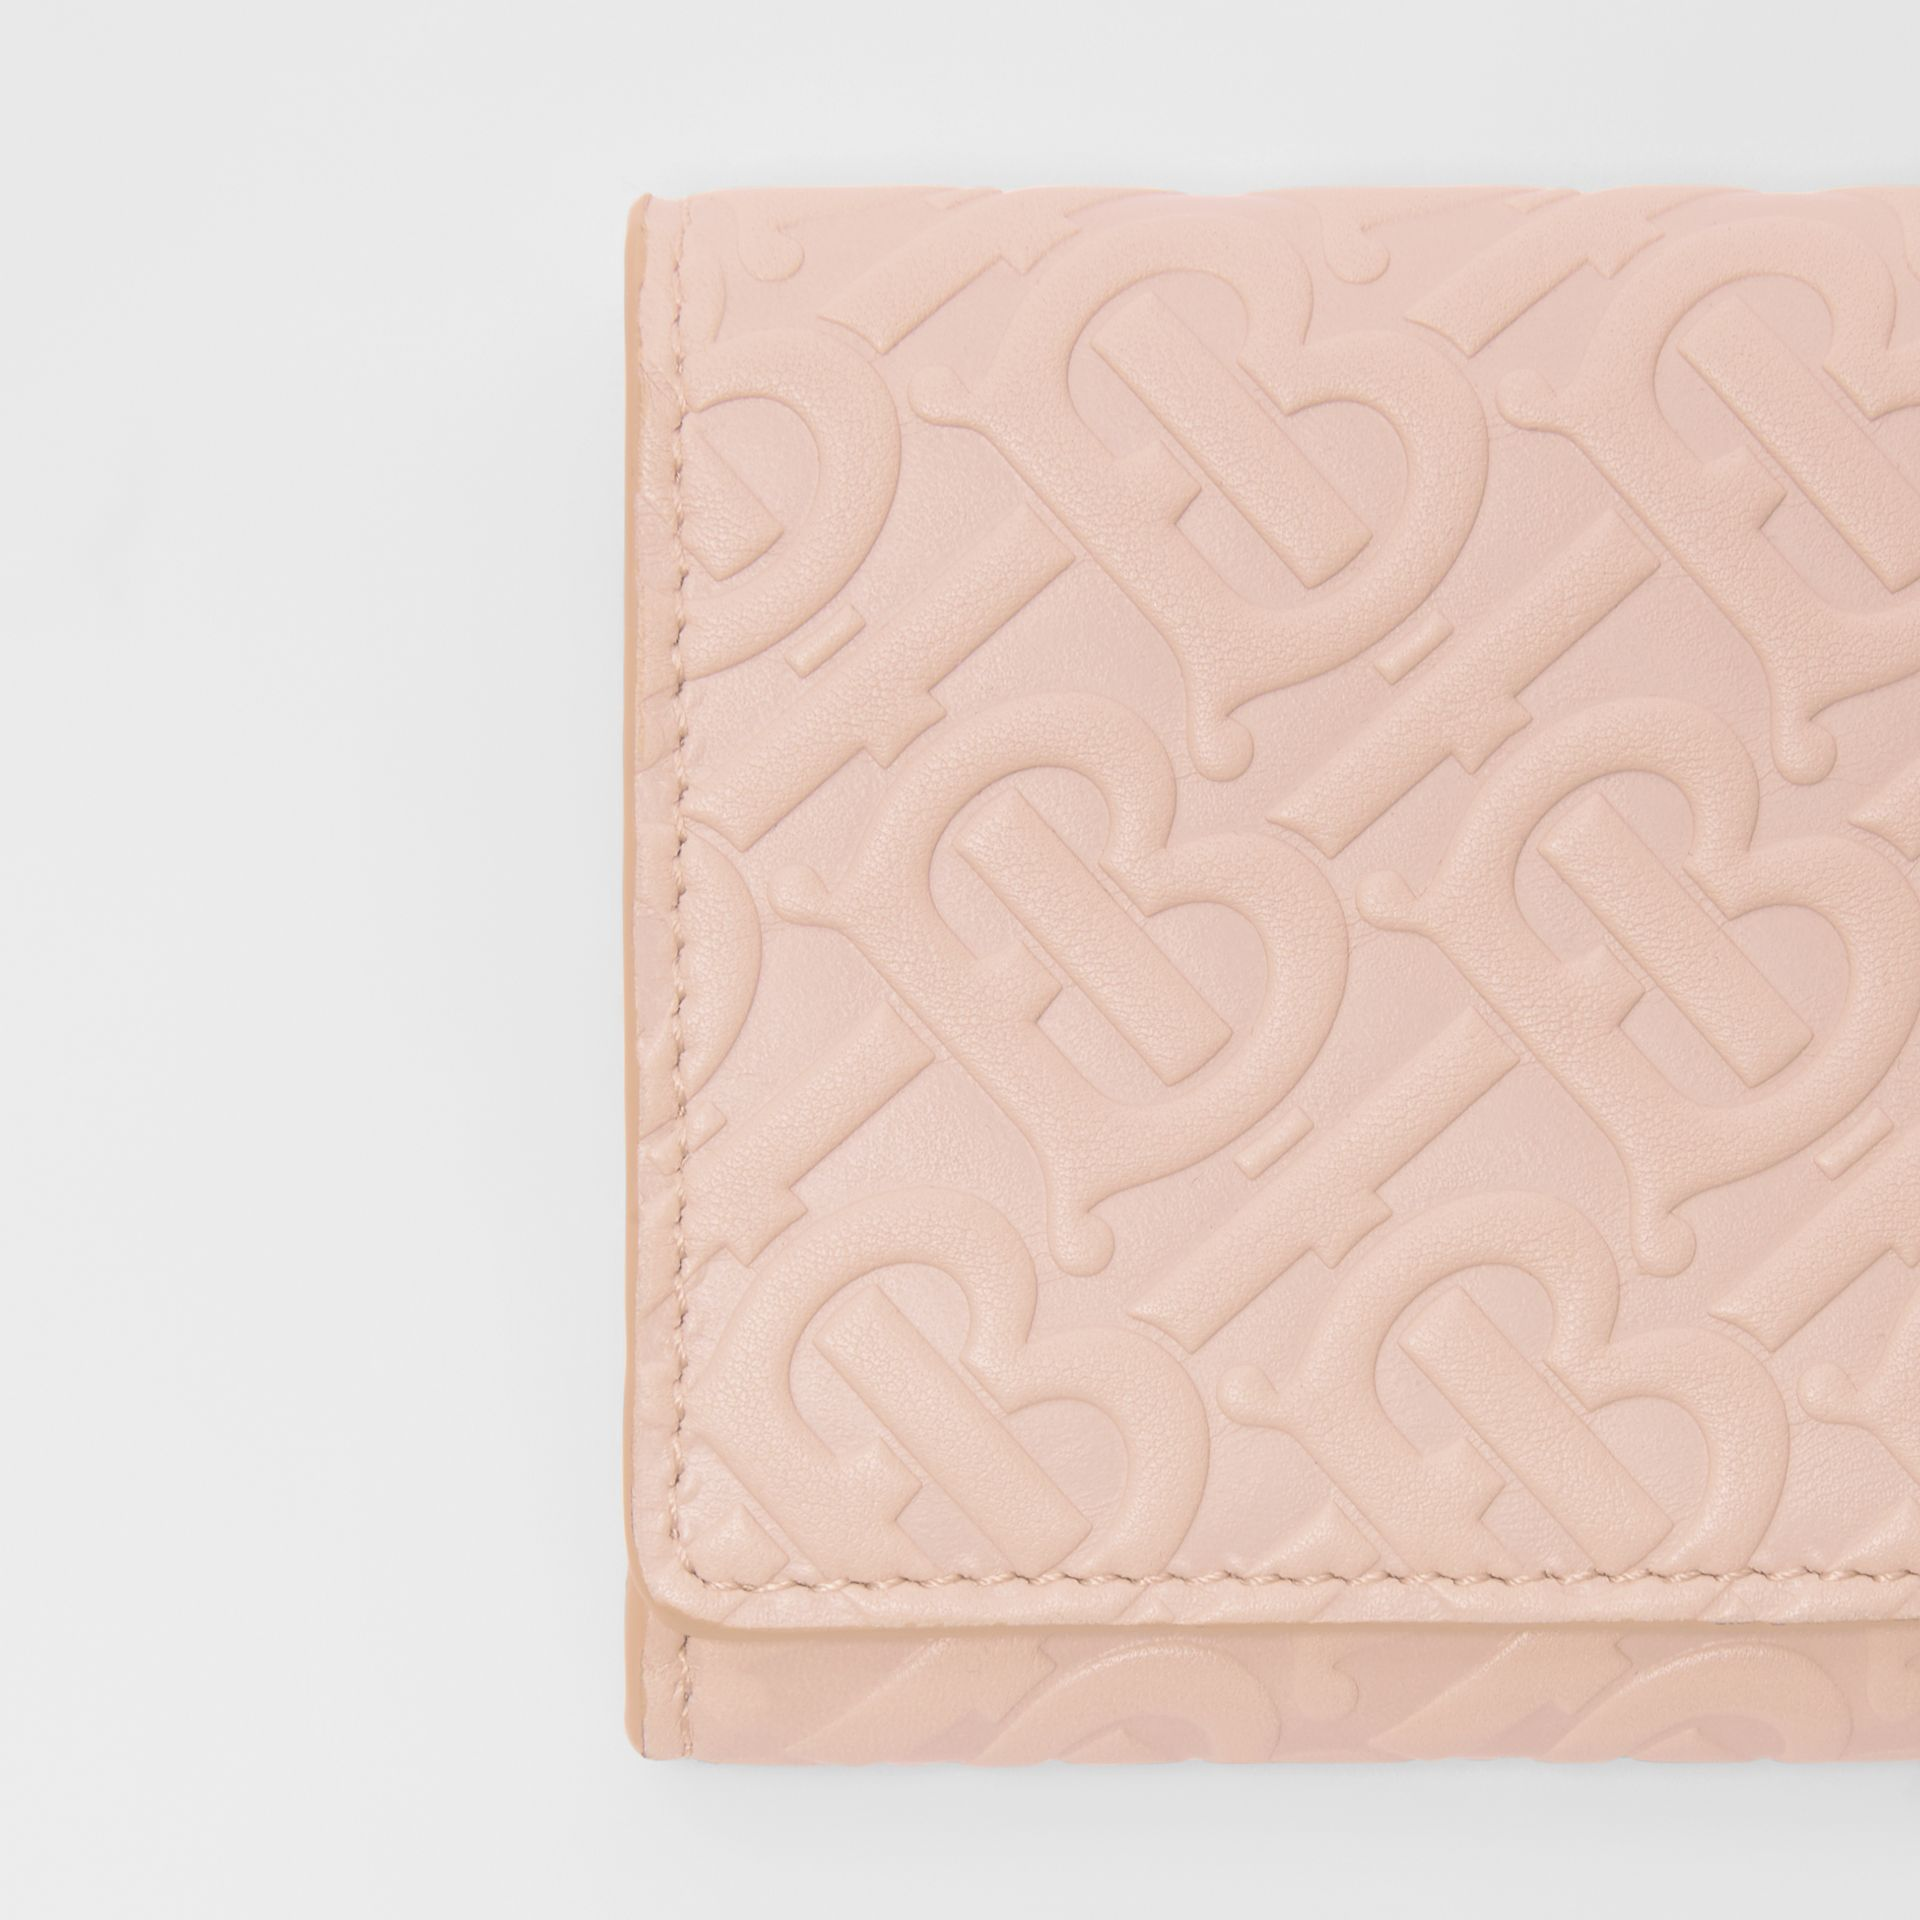 Monogram Leather Continental Wallet in Rose Beige - Women | Burberry Canada - gallery image 1